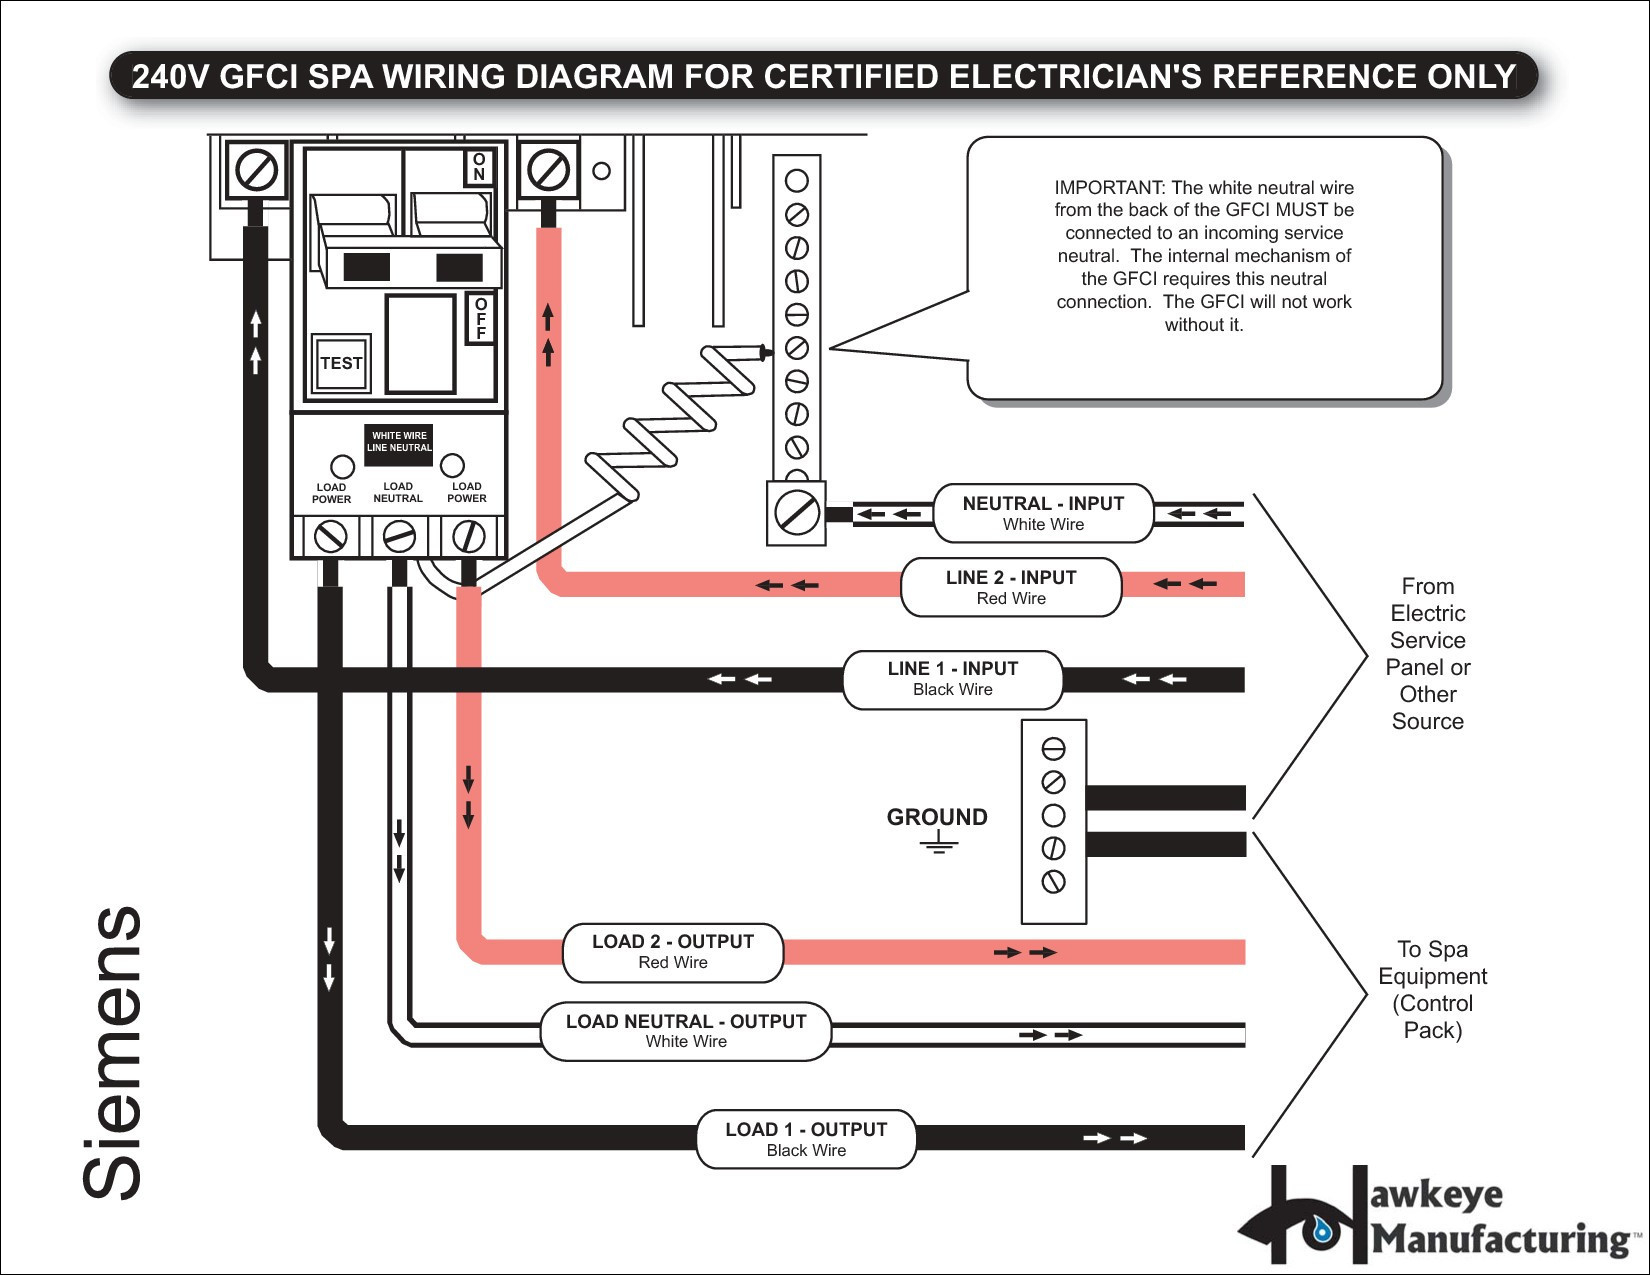 2 pole gfci breaker wiring diagram 3 pole circuit breaker wiring diagram download #5